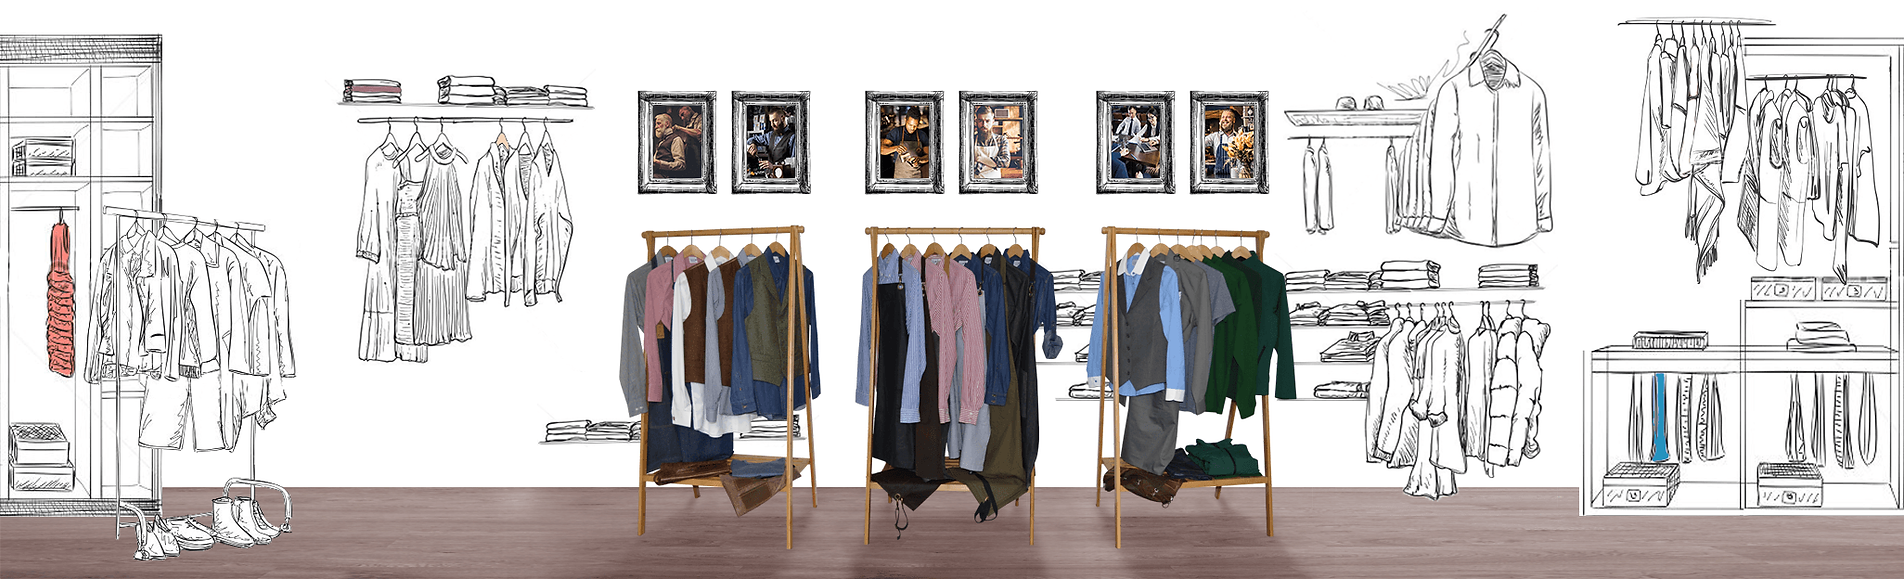 Style Uniforms workwear and unifoms